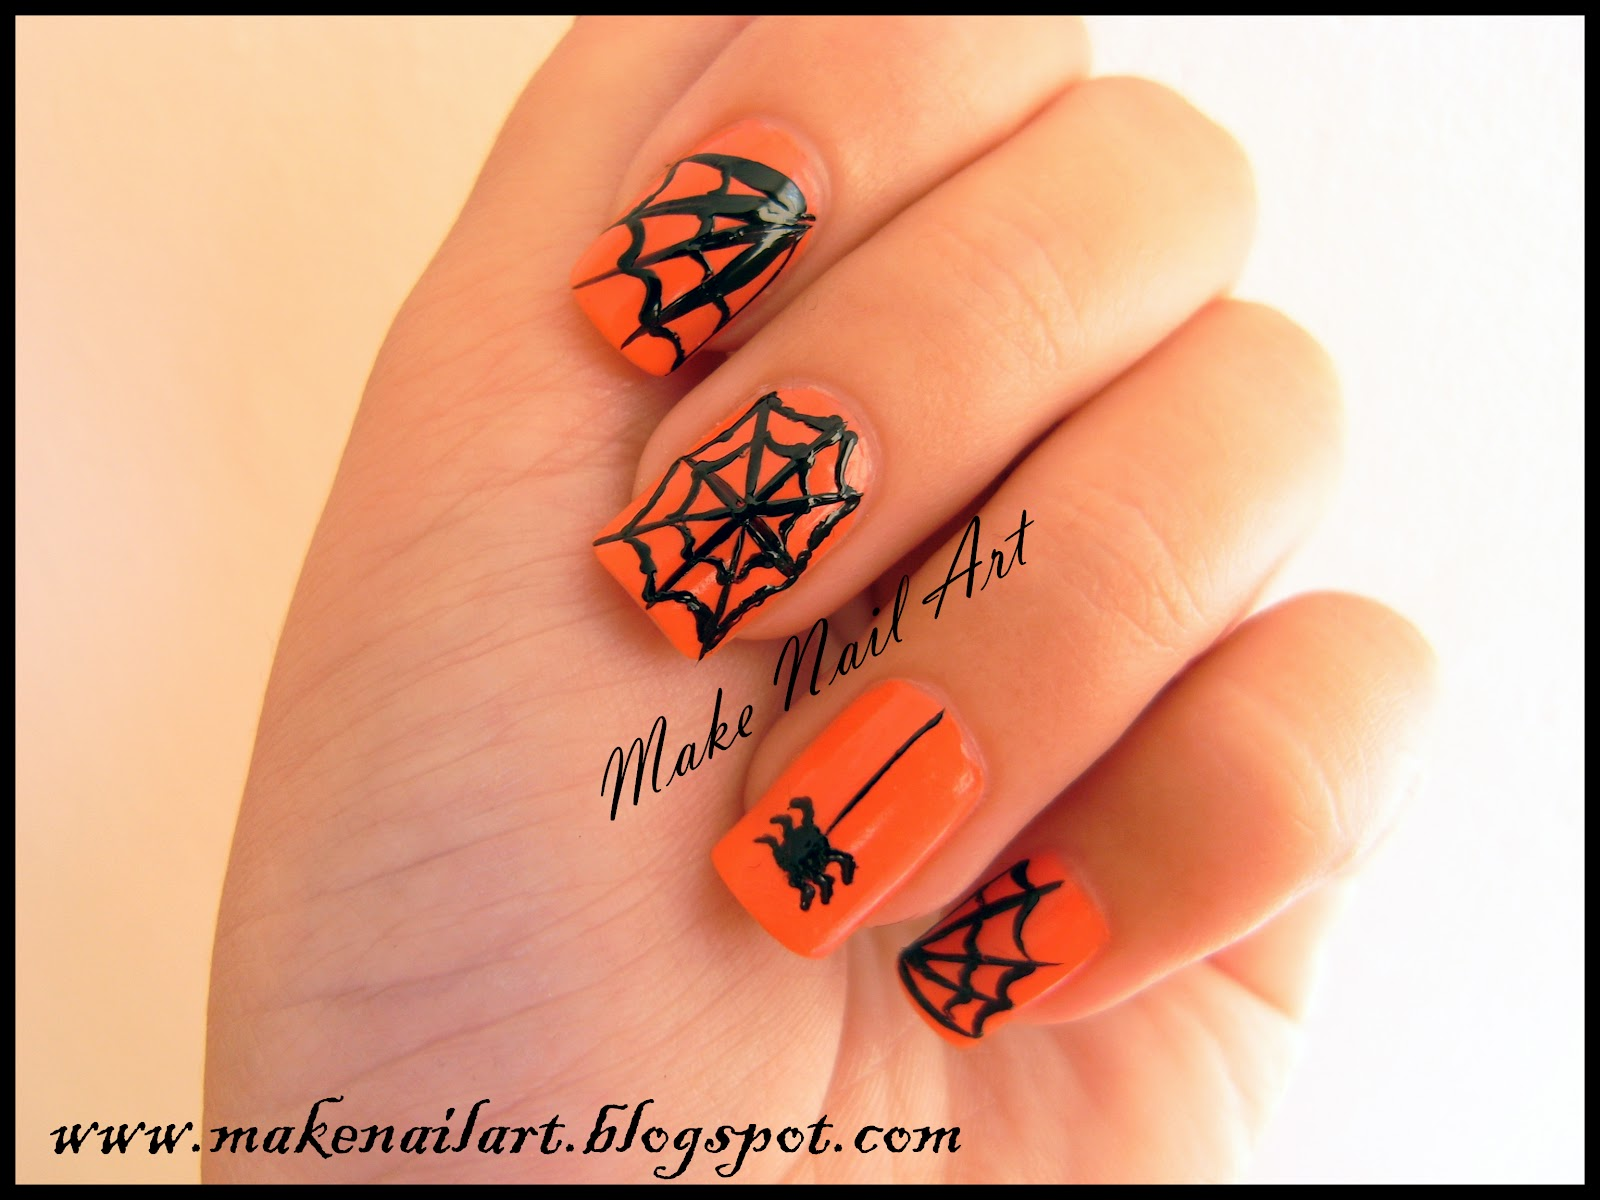 Make Nail Art: Spider Web Nail Art Tutorial For Halloween